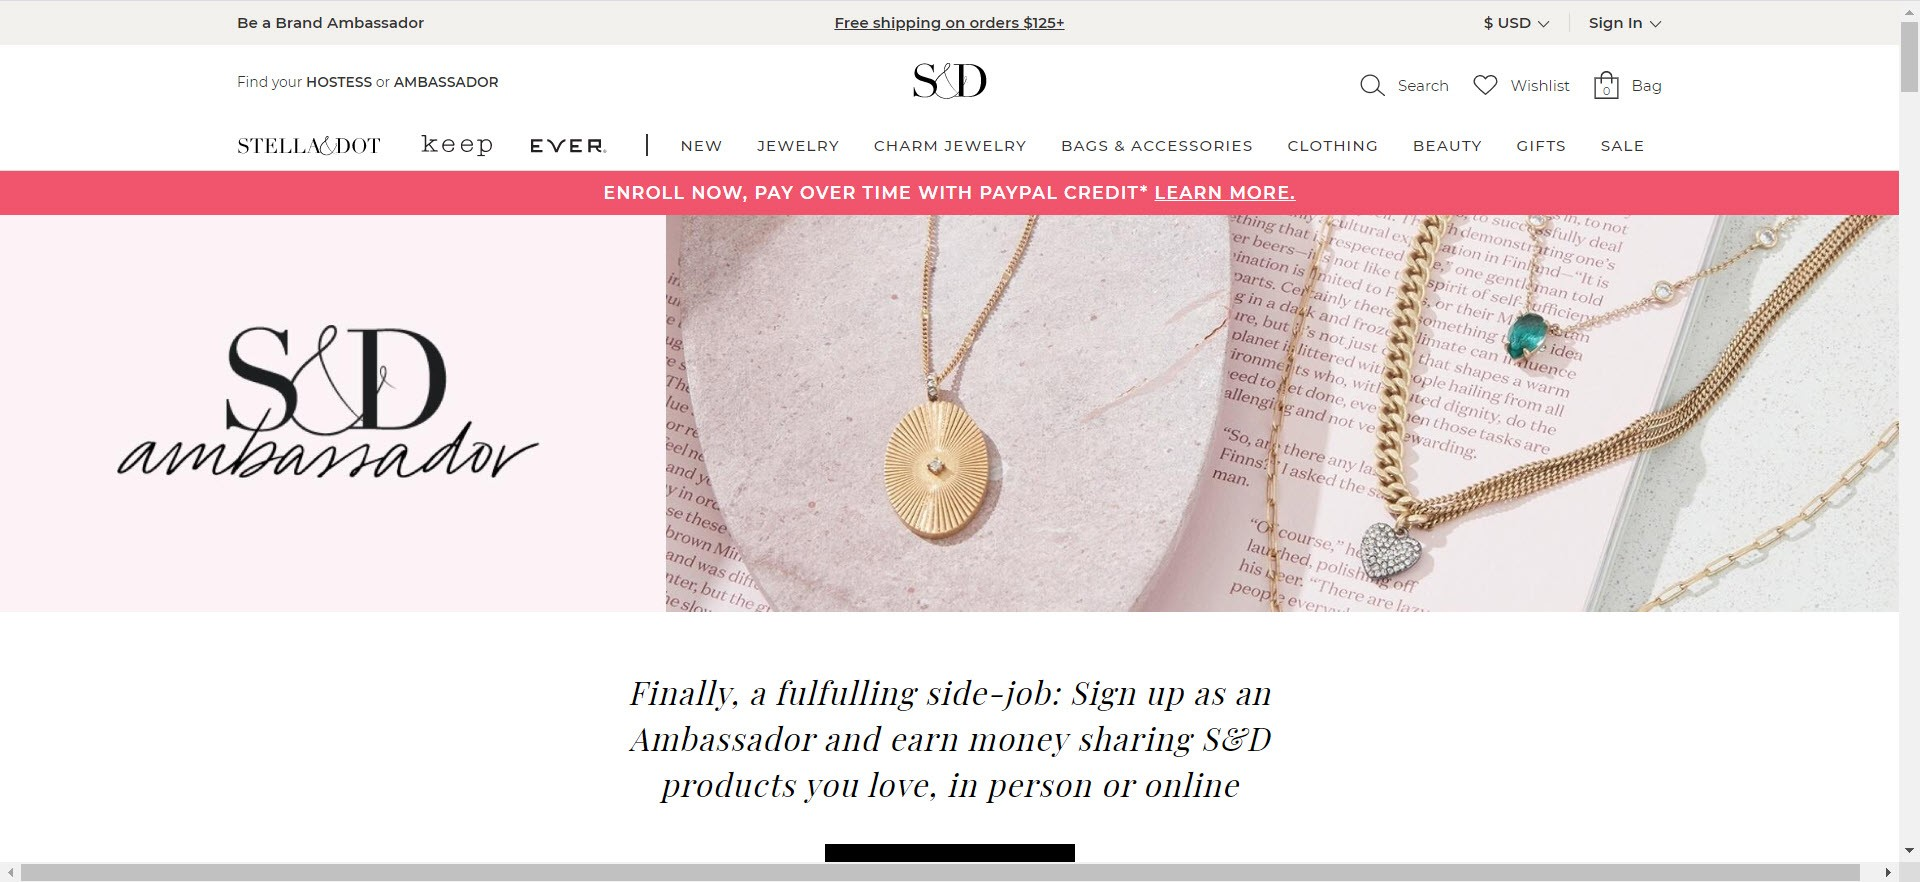 Stella Dot MLM Review - Opportunity